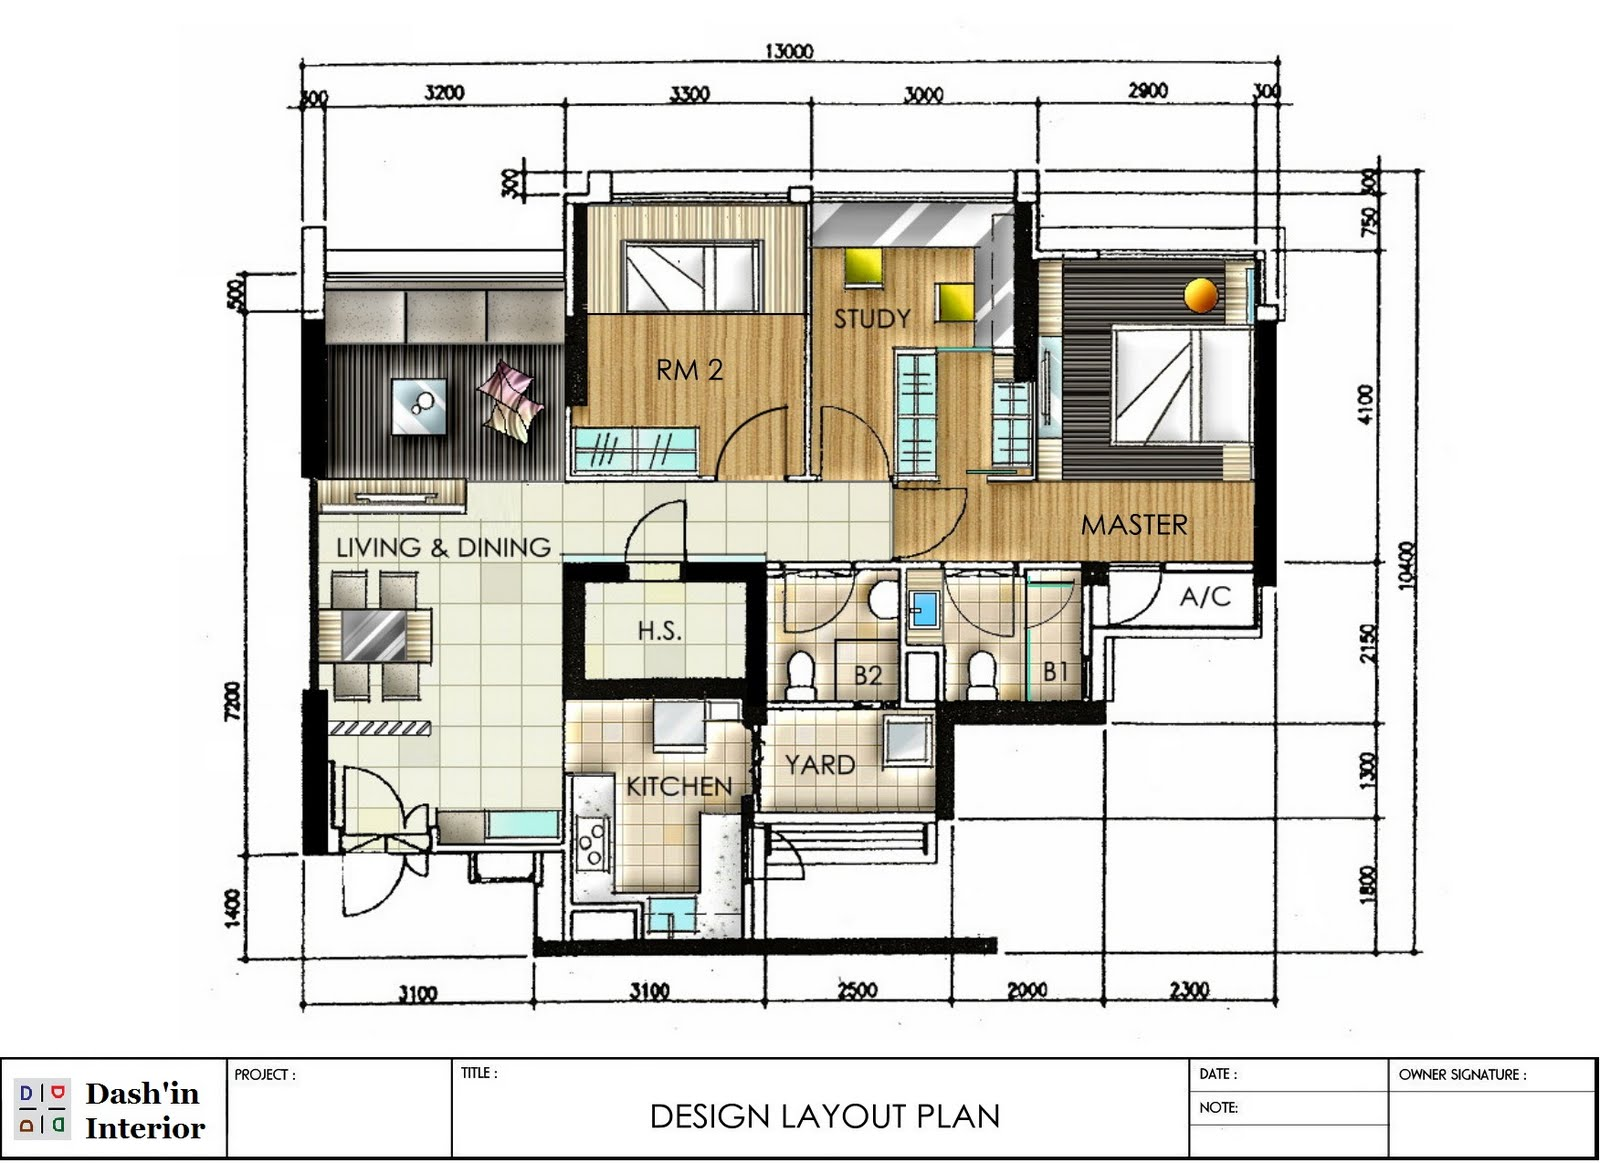 Dash 39 in interior hand drawn designs floor plan layout Floor plan designer